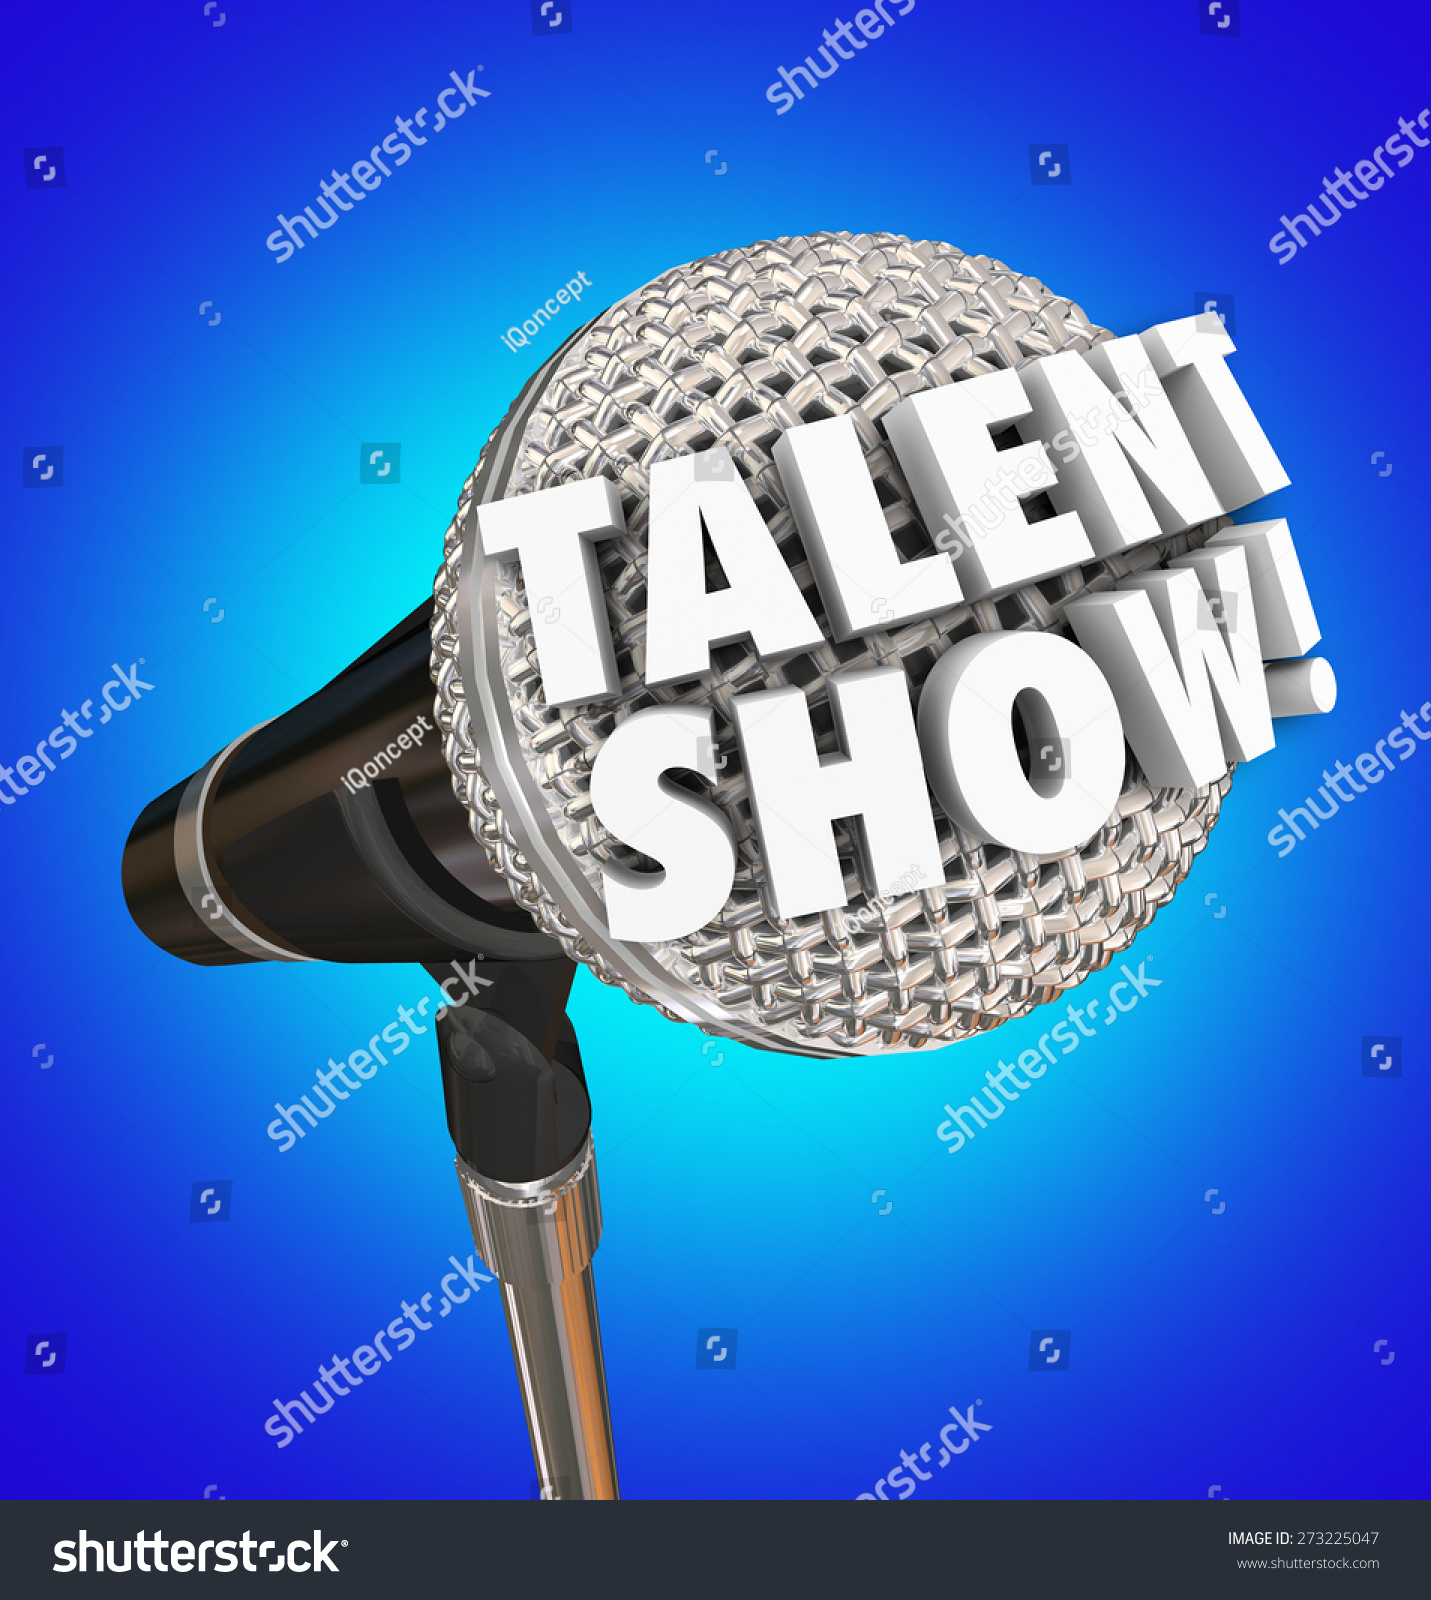 Image result for talent show symbols